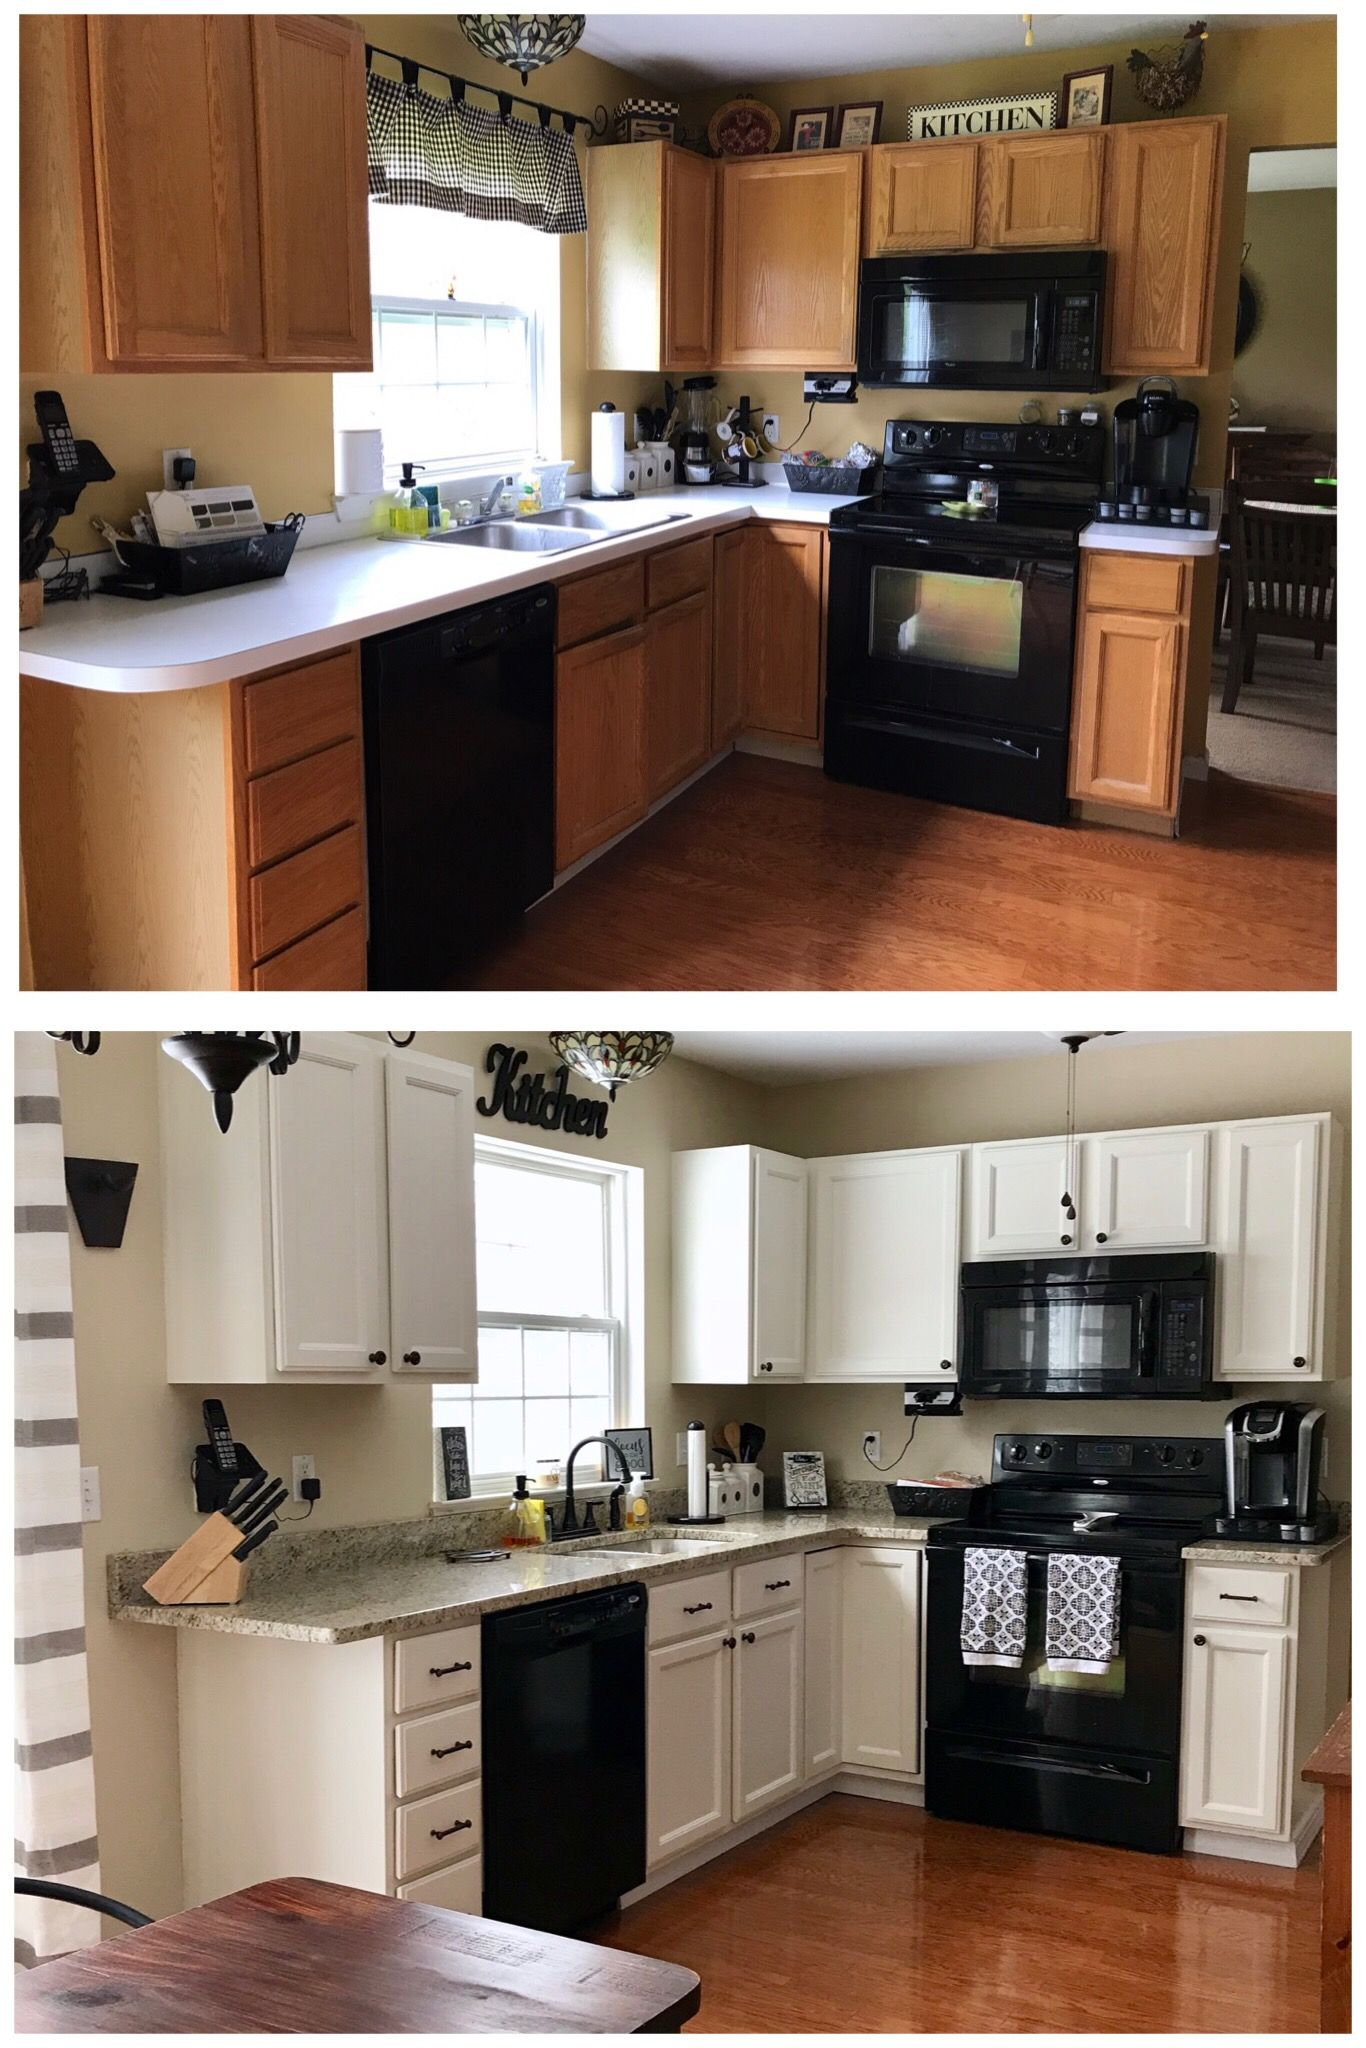 Inexpensive kitchen remodel | Home in 2019 | Home kitchens ...